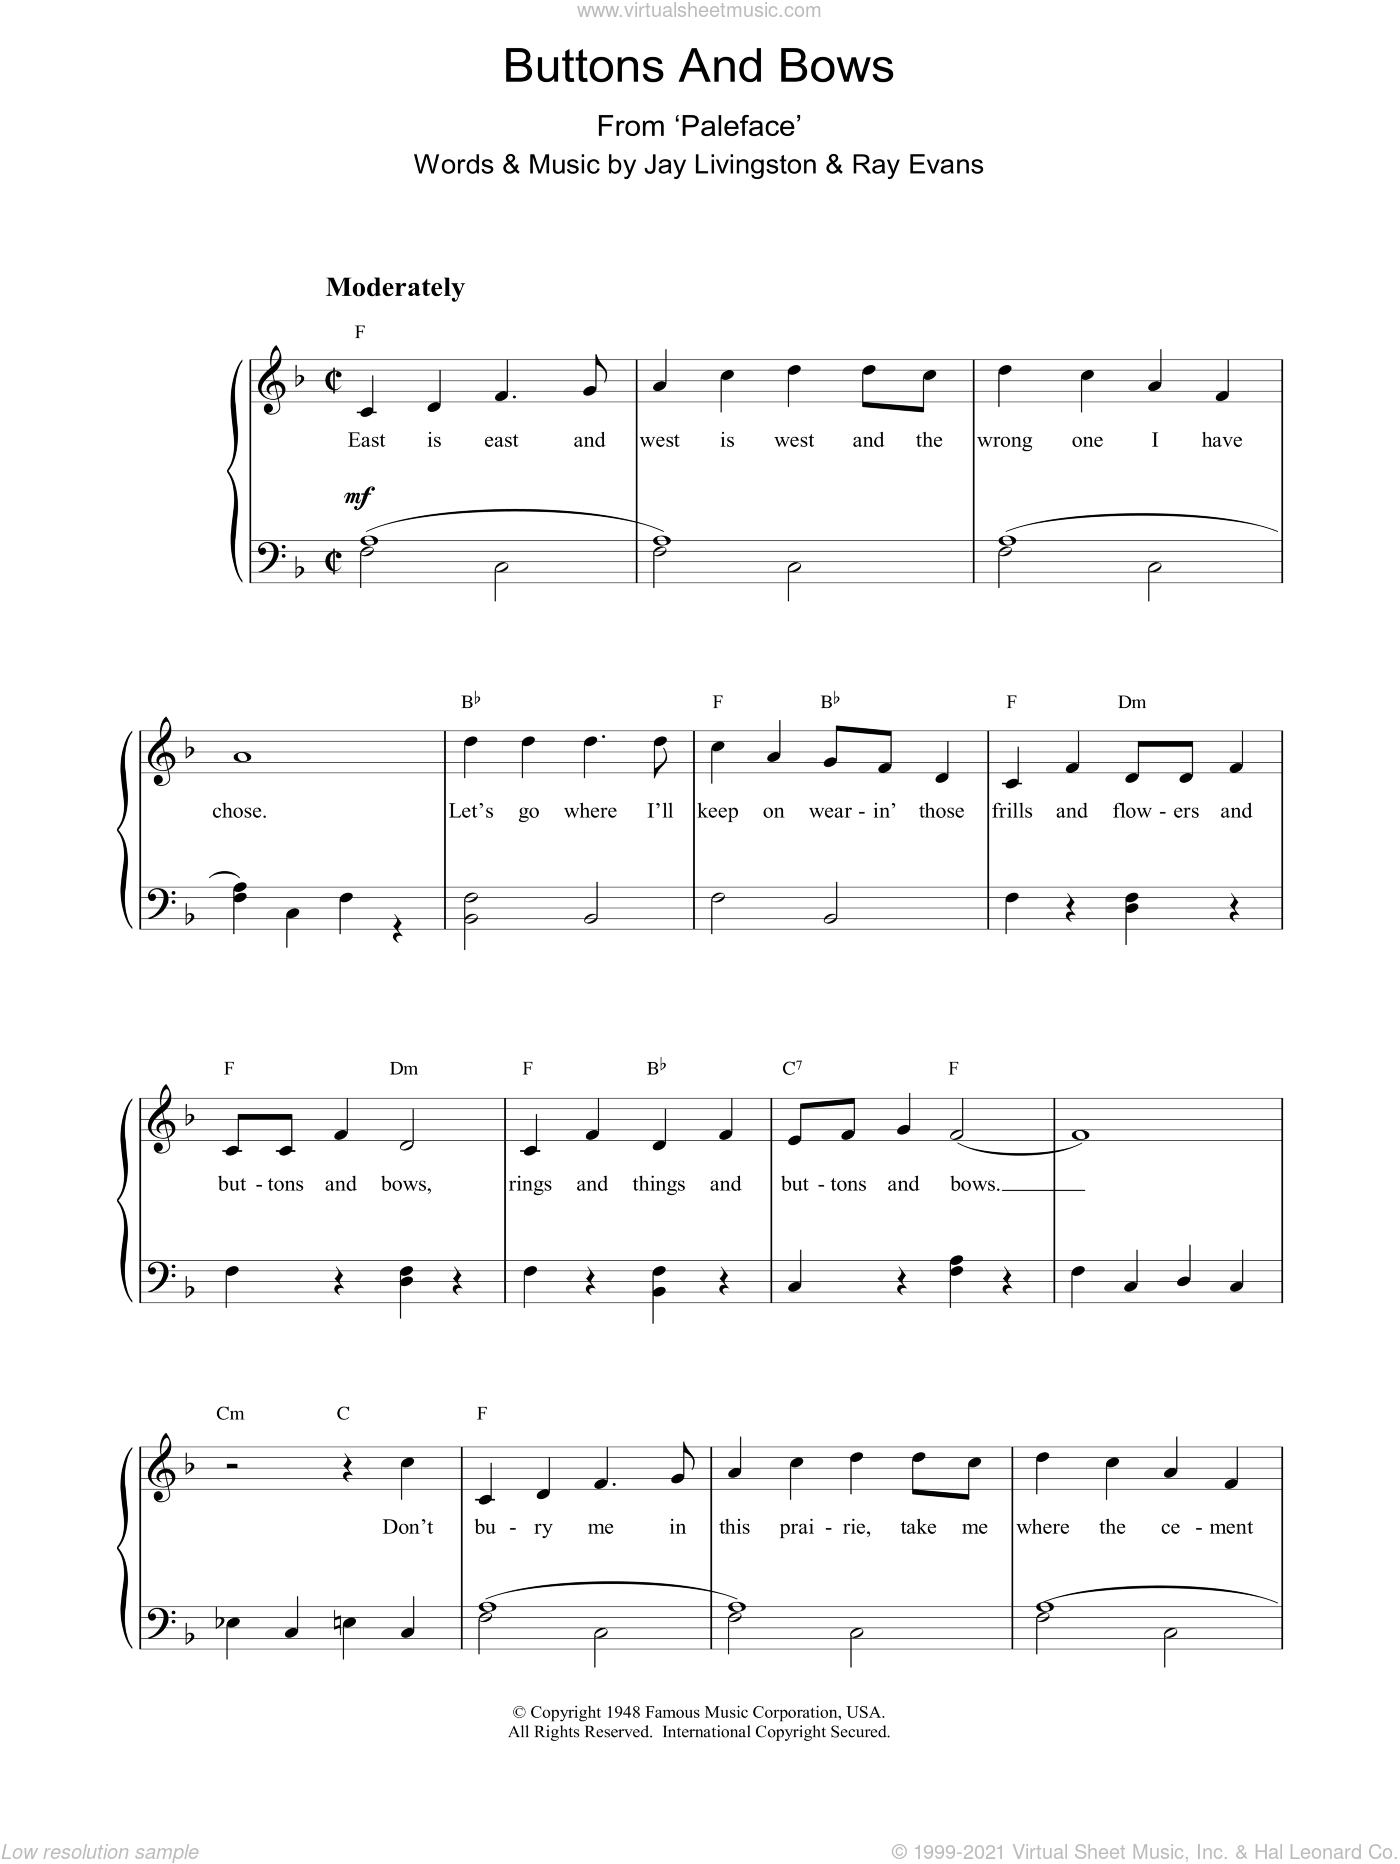 Buttons And Bows sheet music for piano solo by J & Evans, R Livingston, Dinah Shore and Gene Autry. Score Image Preview.